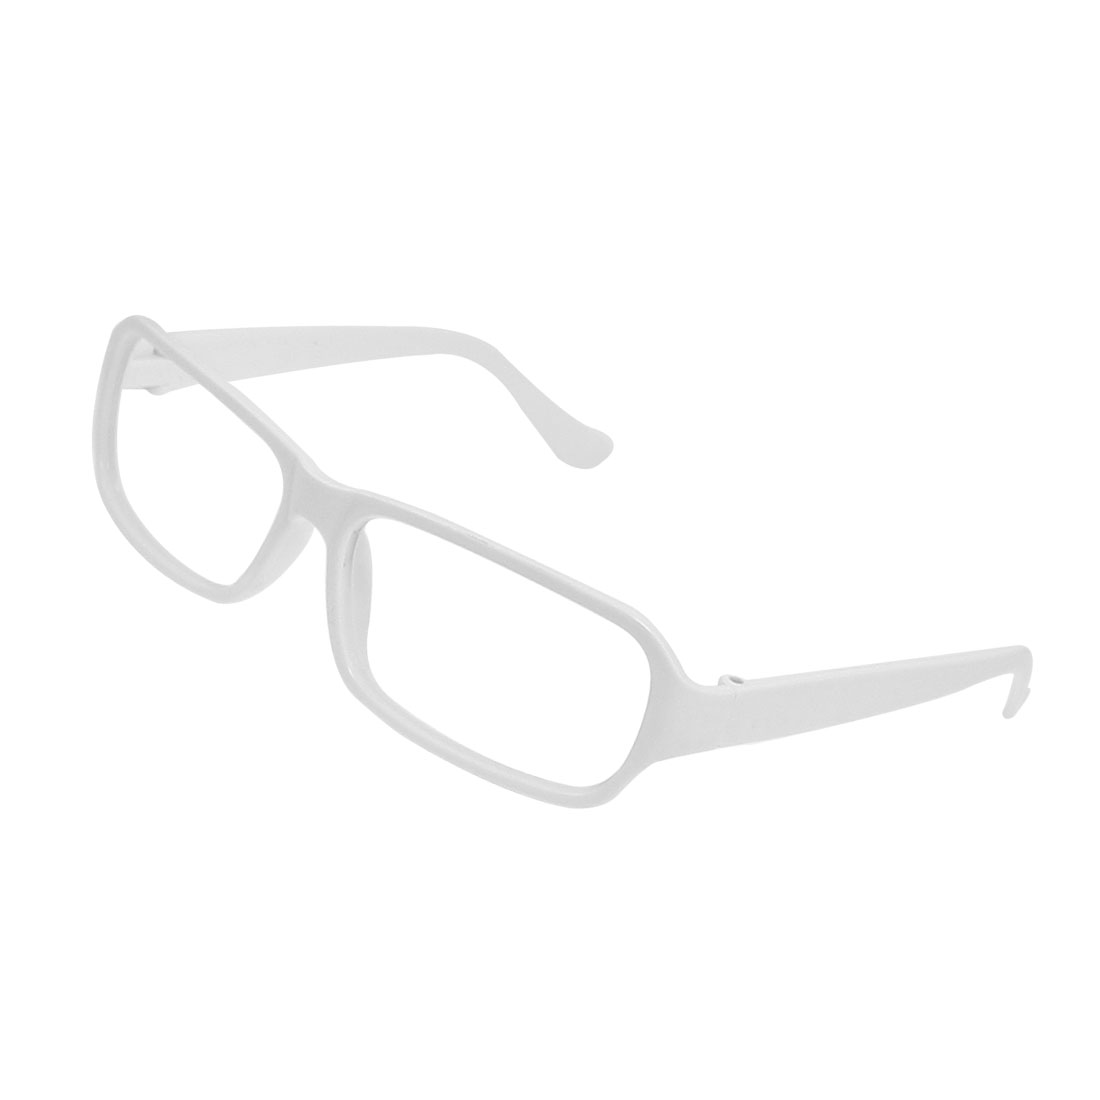 White Plastic Rectangle Full Rim Glasses Eyeglasses Frame for Ladies